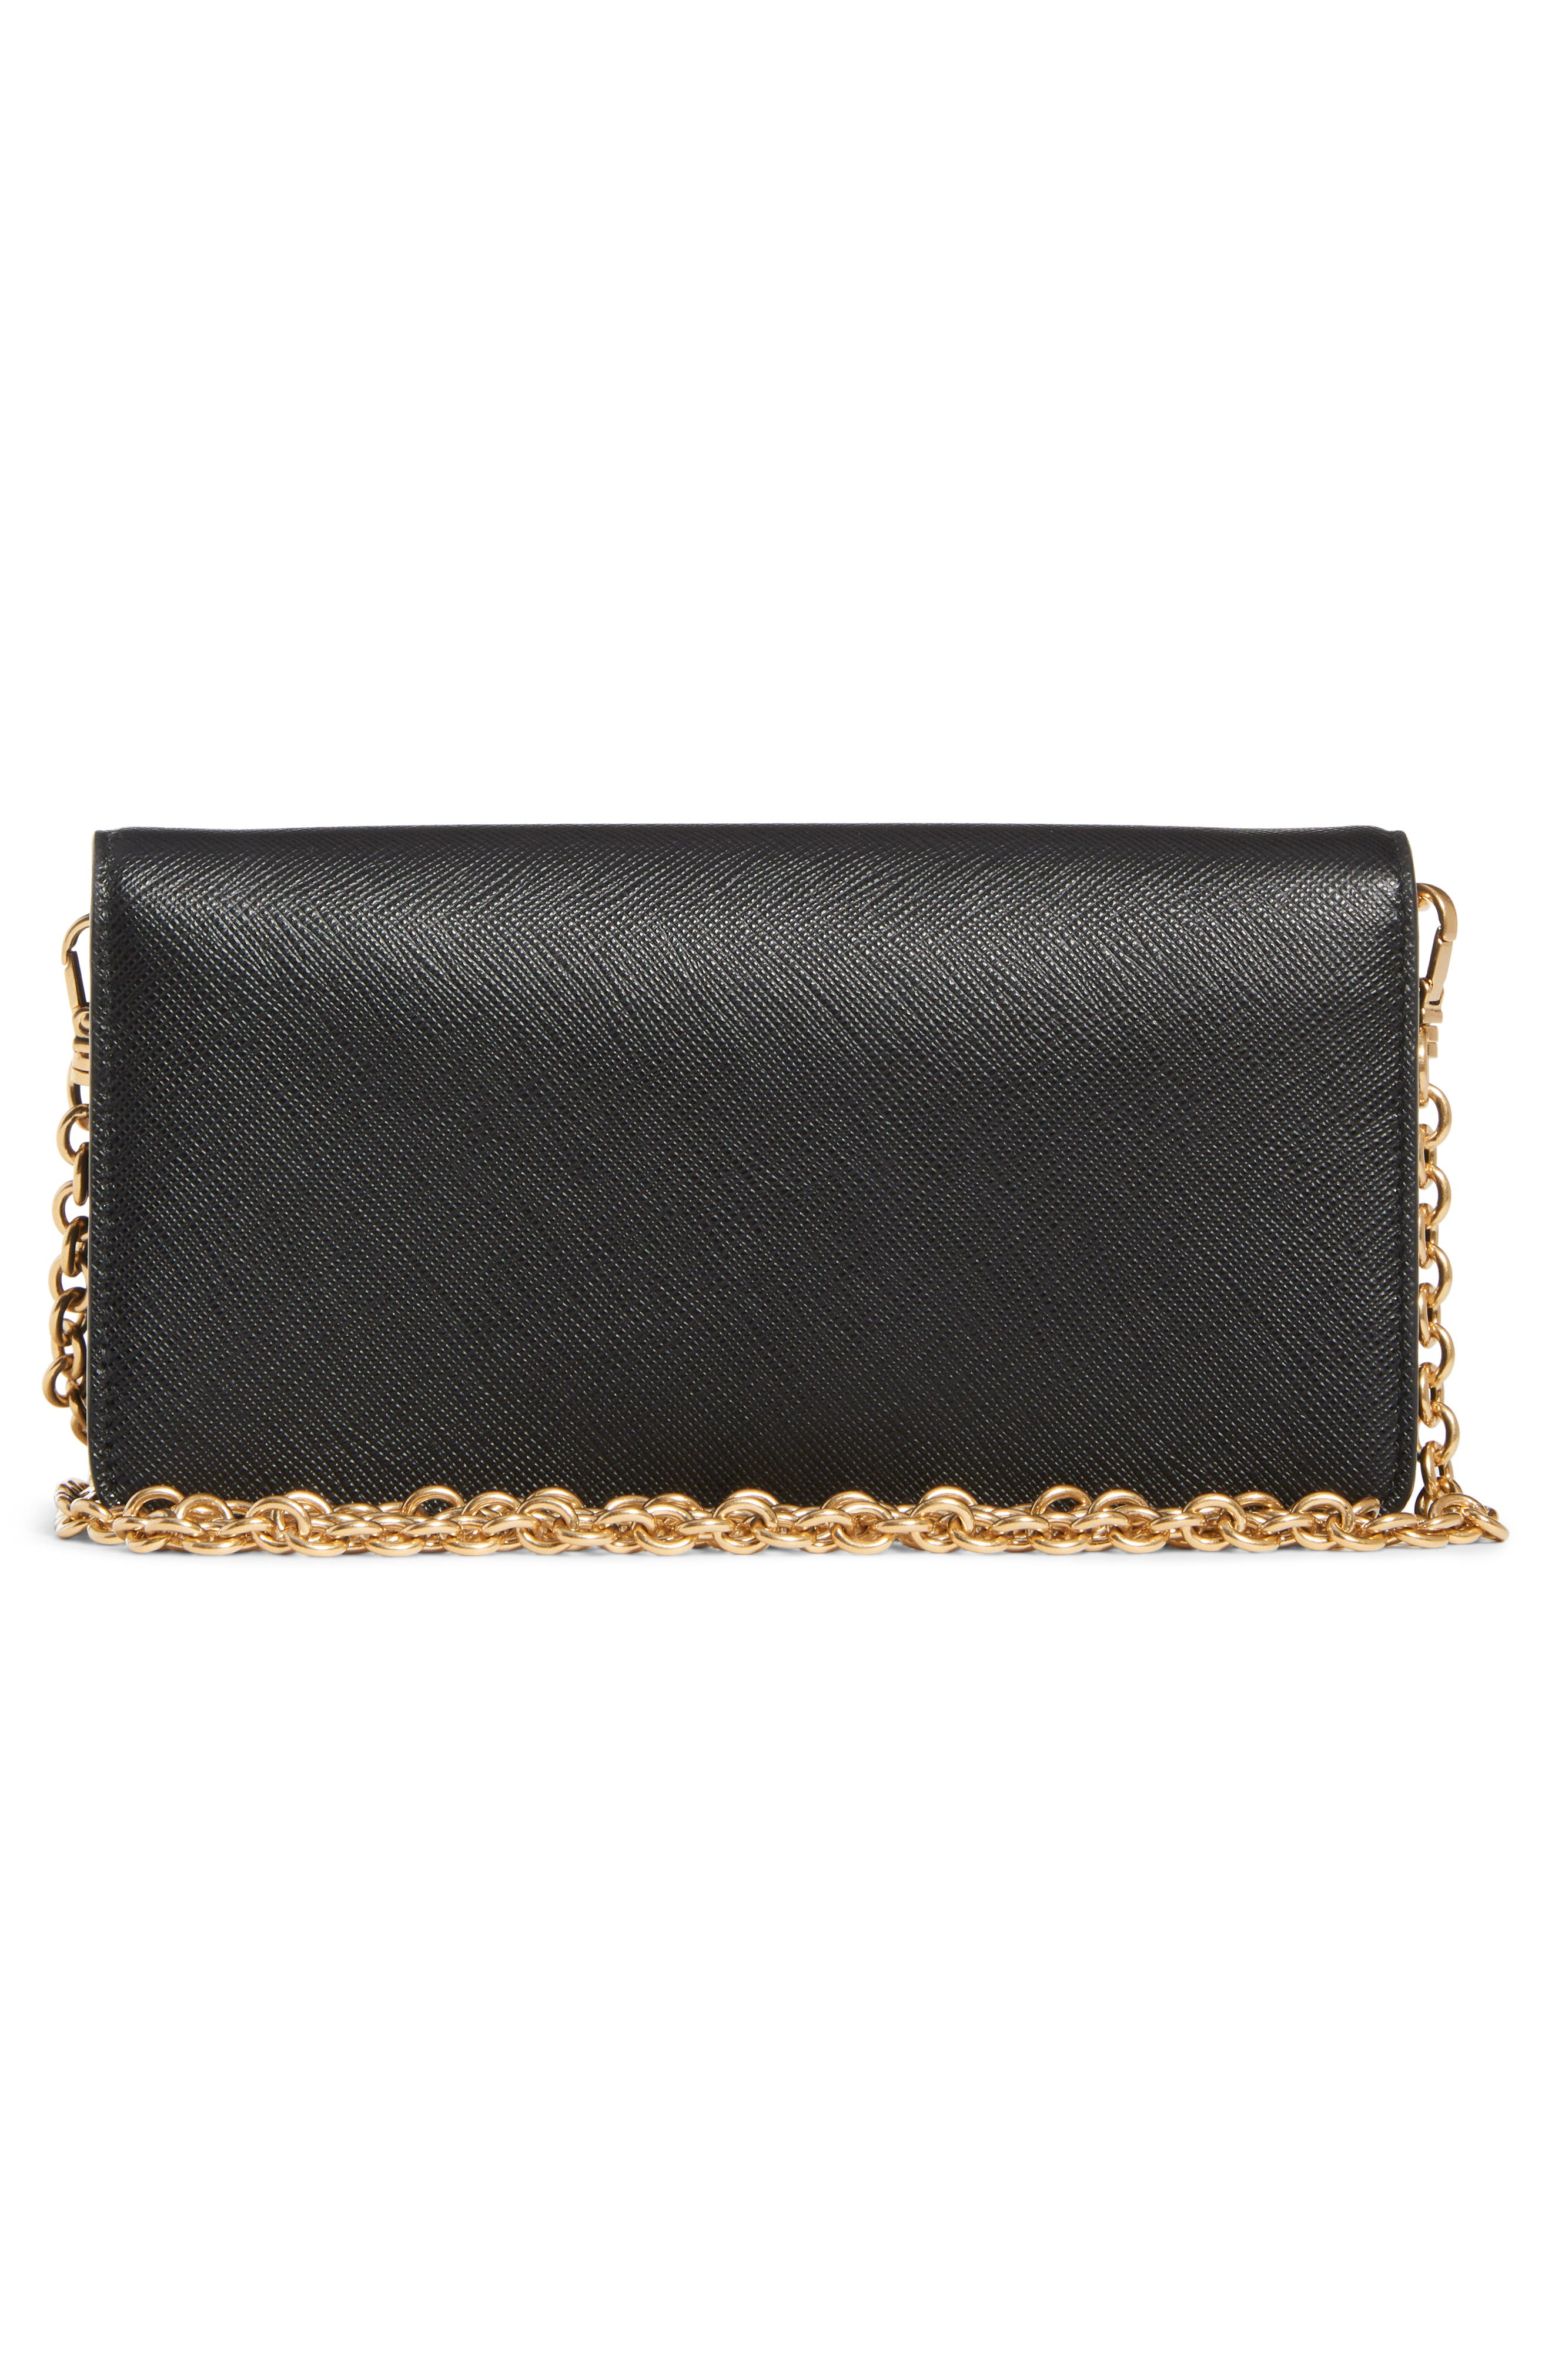 Embellished Saffiano Leather Wallet on a Chain,                             Alternate thumbnail 2, color,                             NERO/ FUOCO